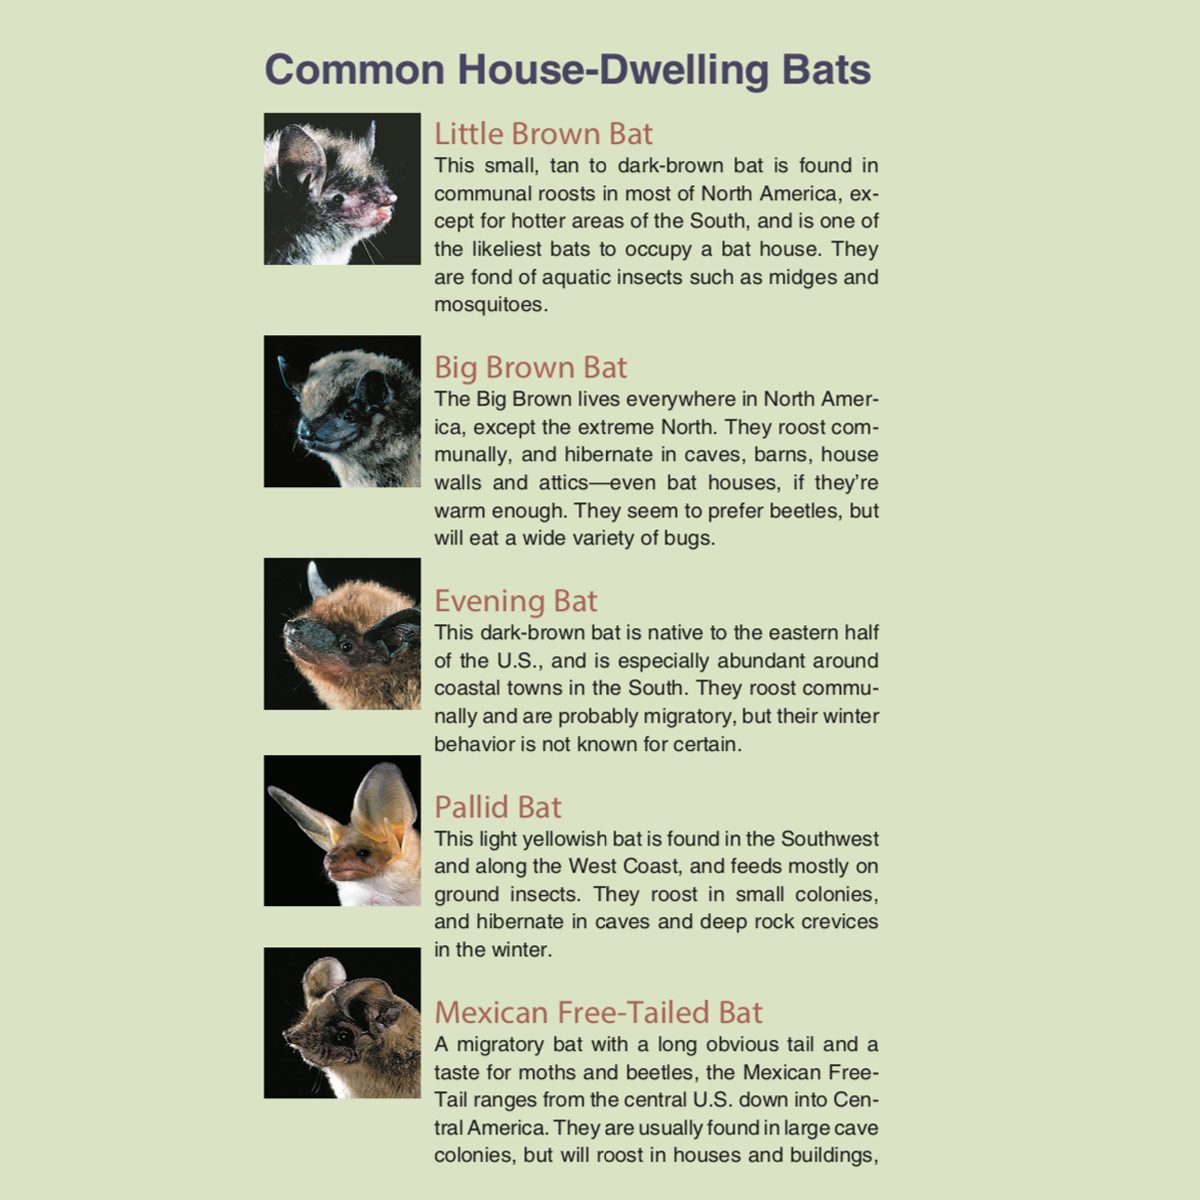 Bugs Beware Here Come The Bats Family Handyman Electrical Wiring How To Run Power Anywhere Still Not Convinced Are A Few More Facts About